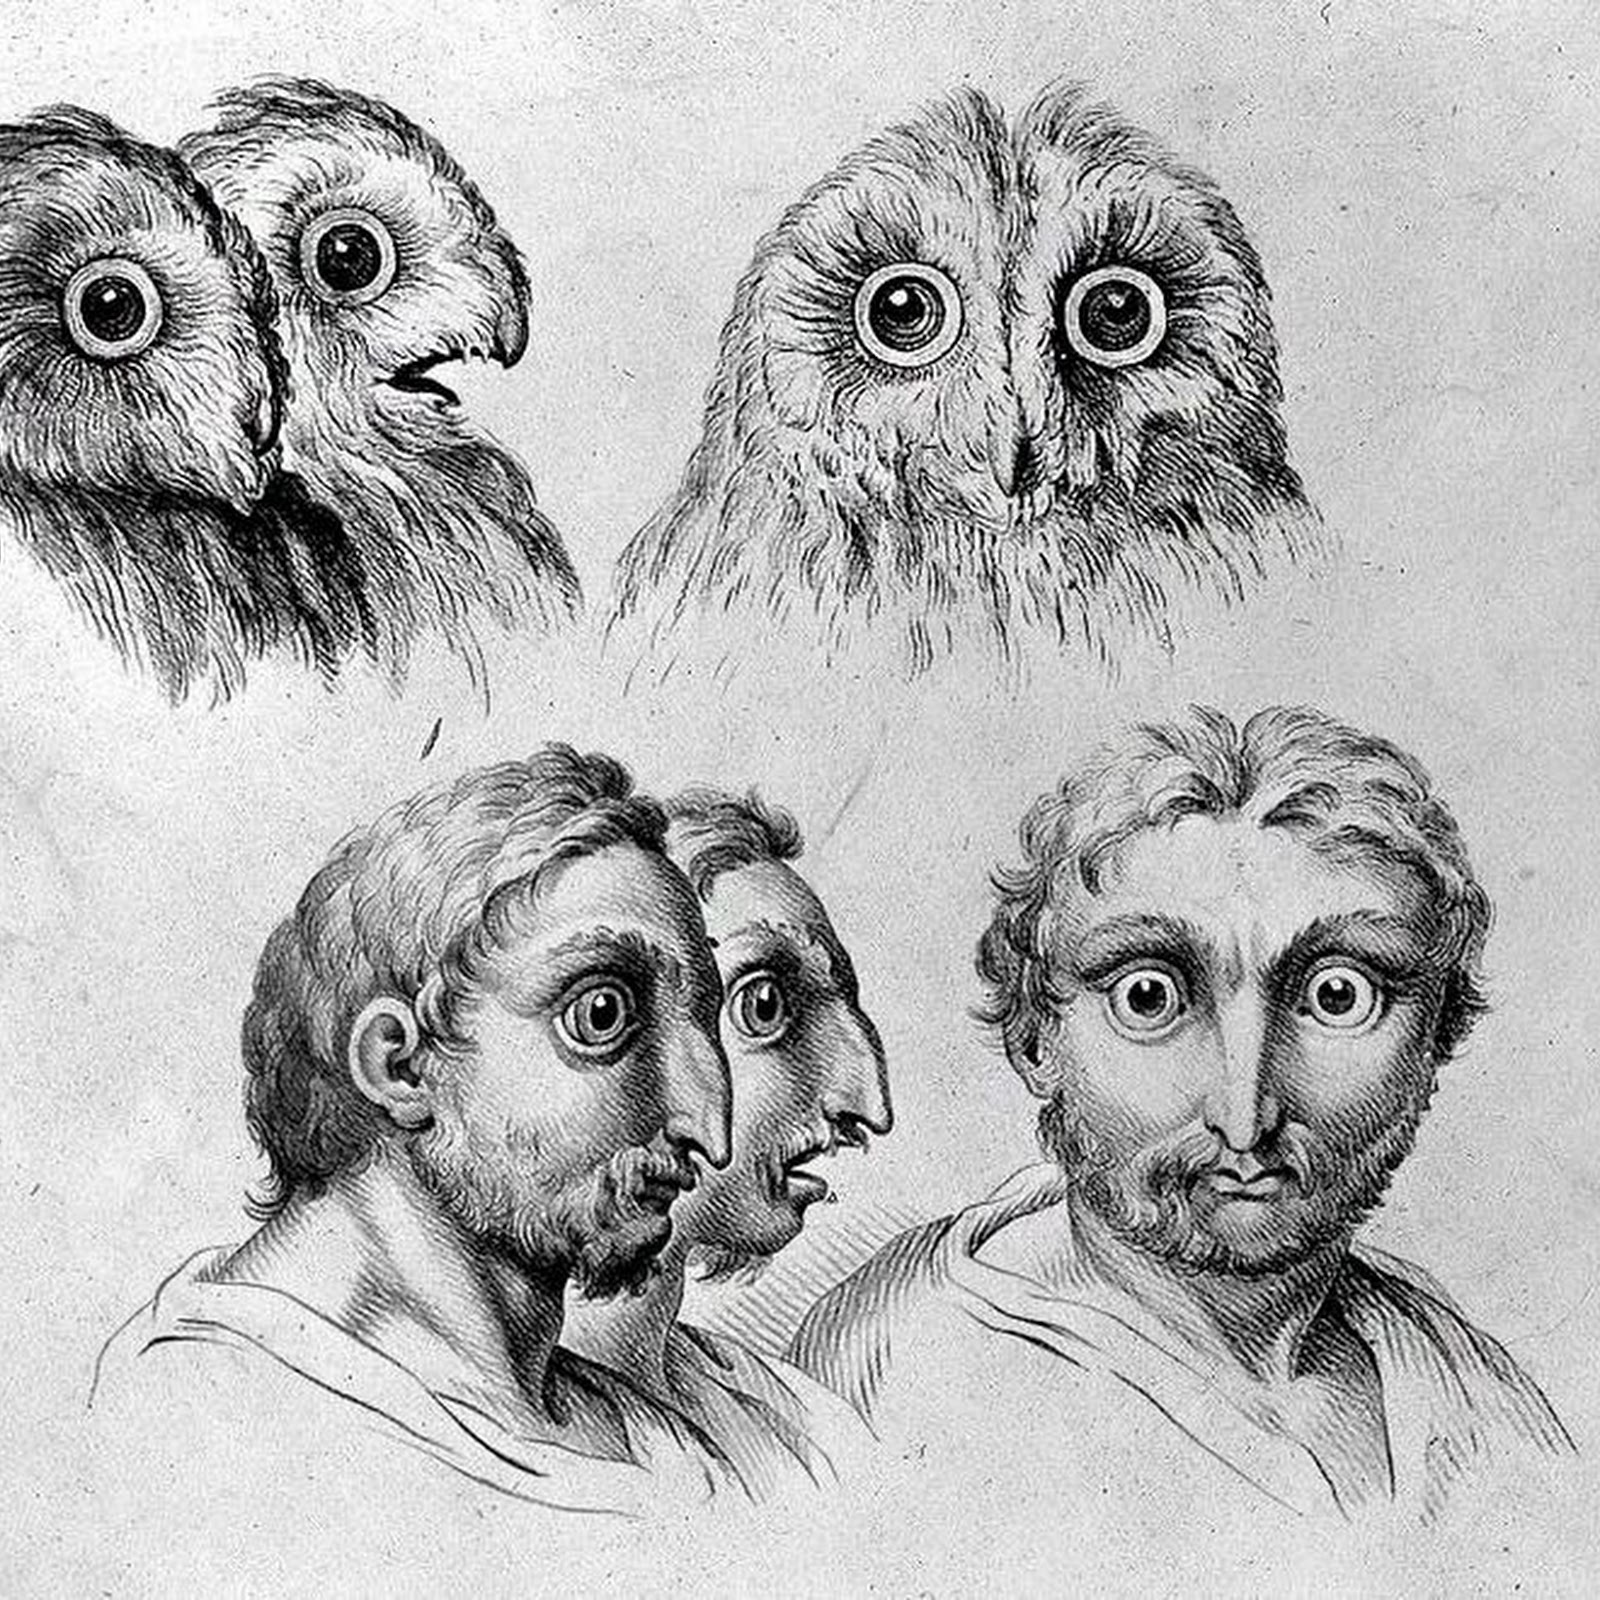 17th century sketches comparing human and animal faces amusing planet